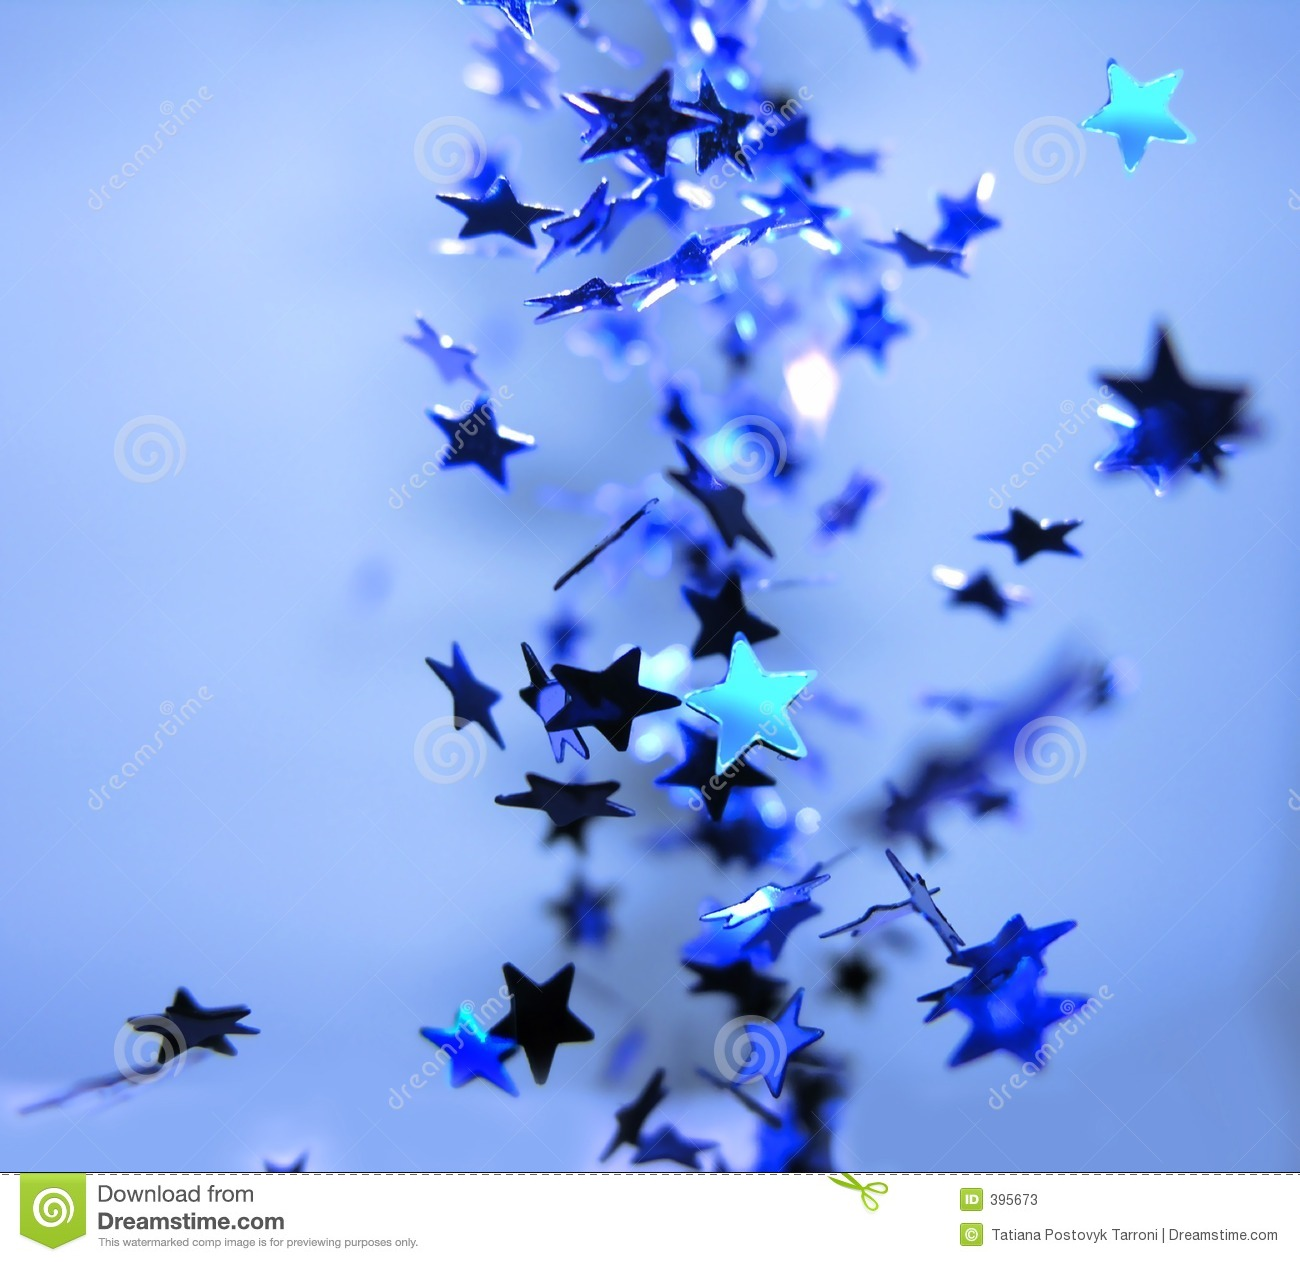 Falling Shiny Blue Stars Celebration